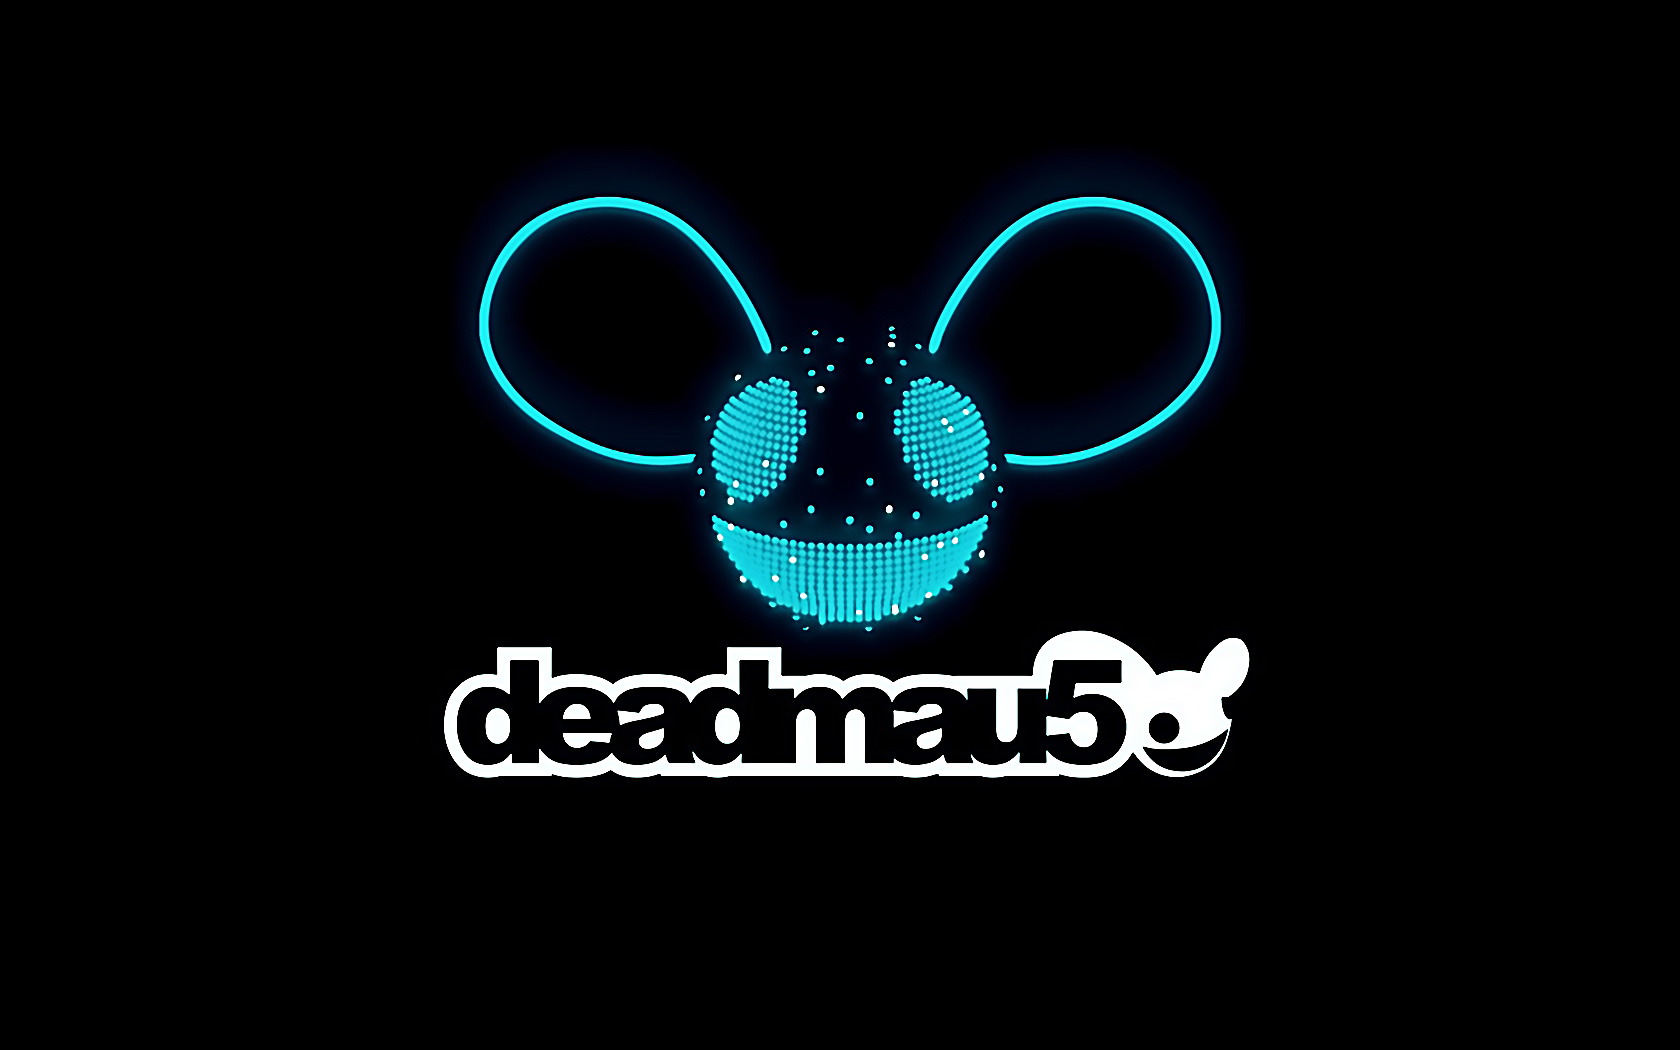 Deadmau5 Res: 1680x1050 / Size:141kb. Views: 28667